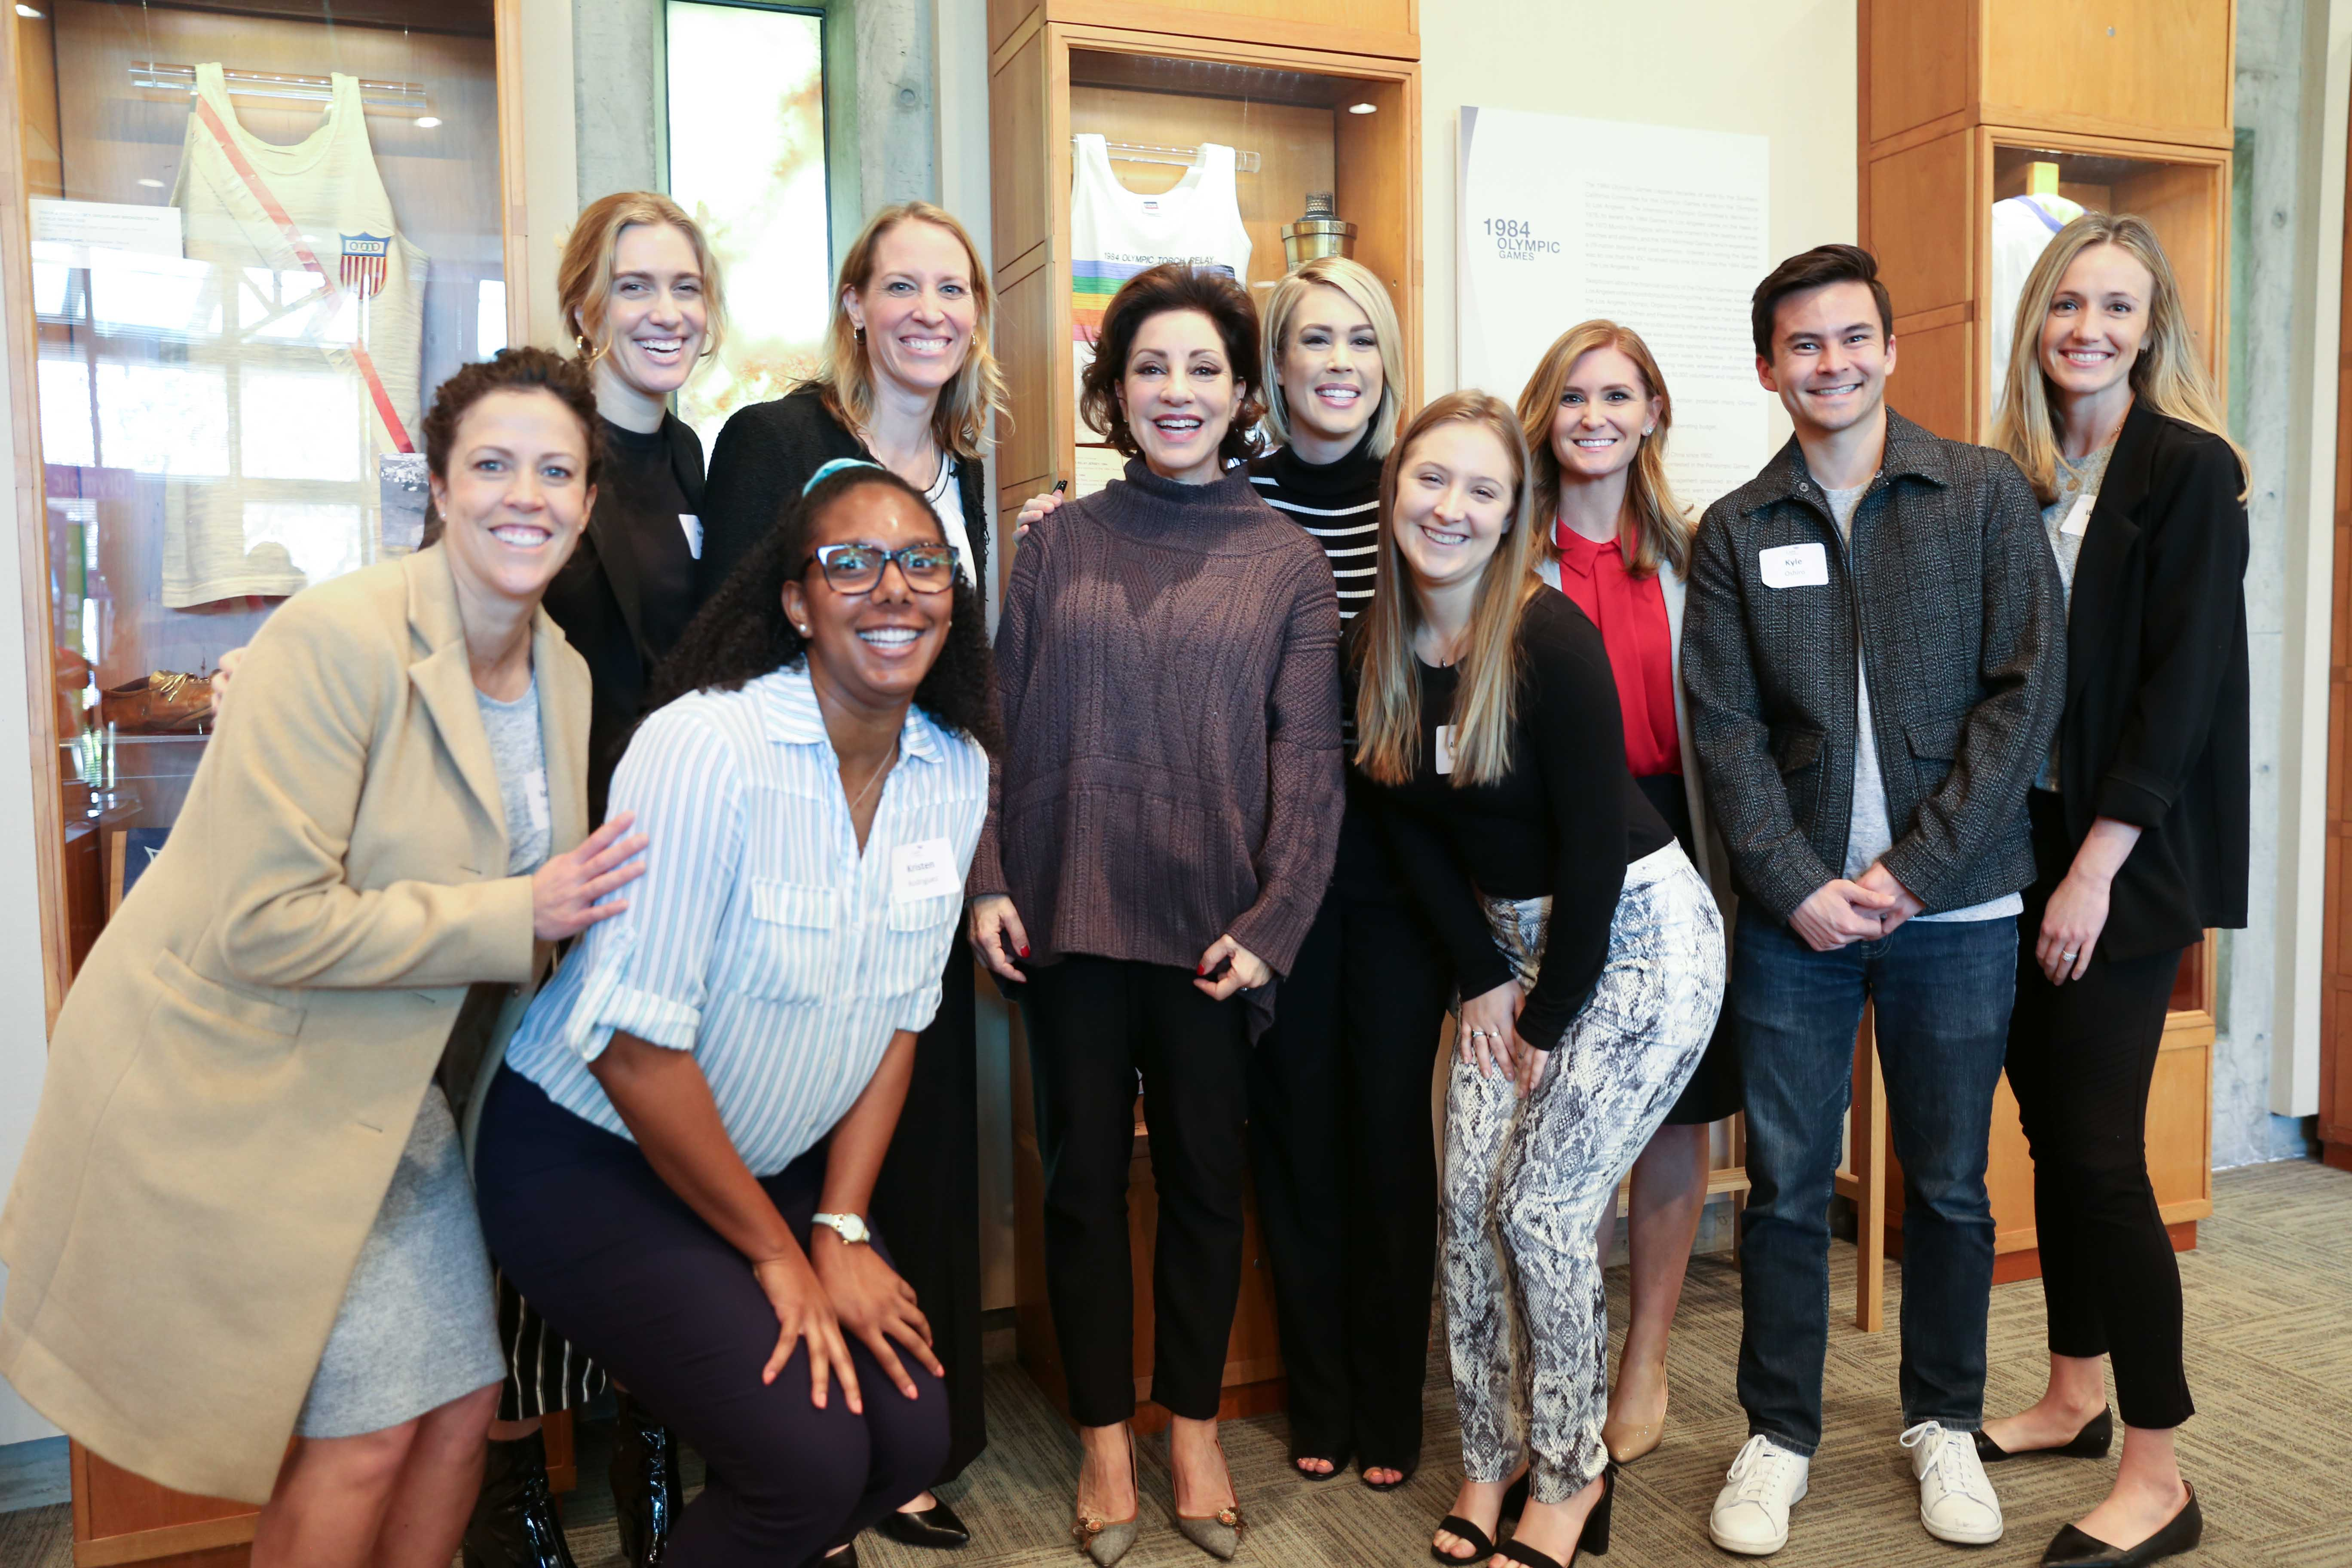 LA84 Hosts Seven-Time NCAA National Champion Valorie Kondos Field on National Girls & Women in Sports Day